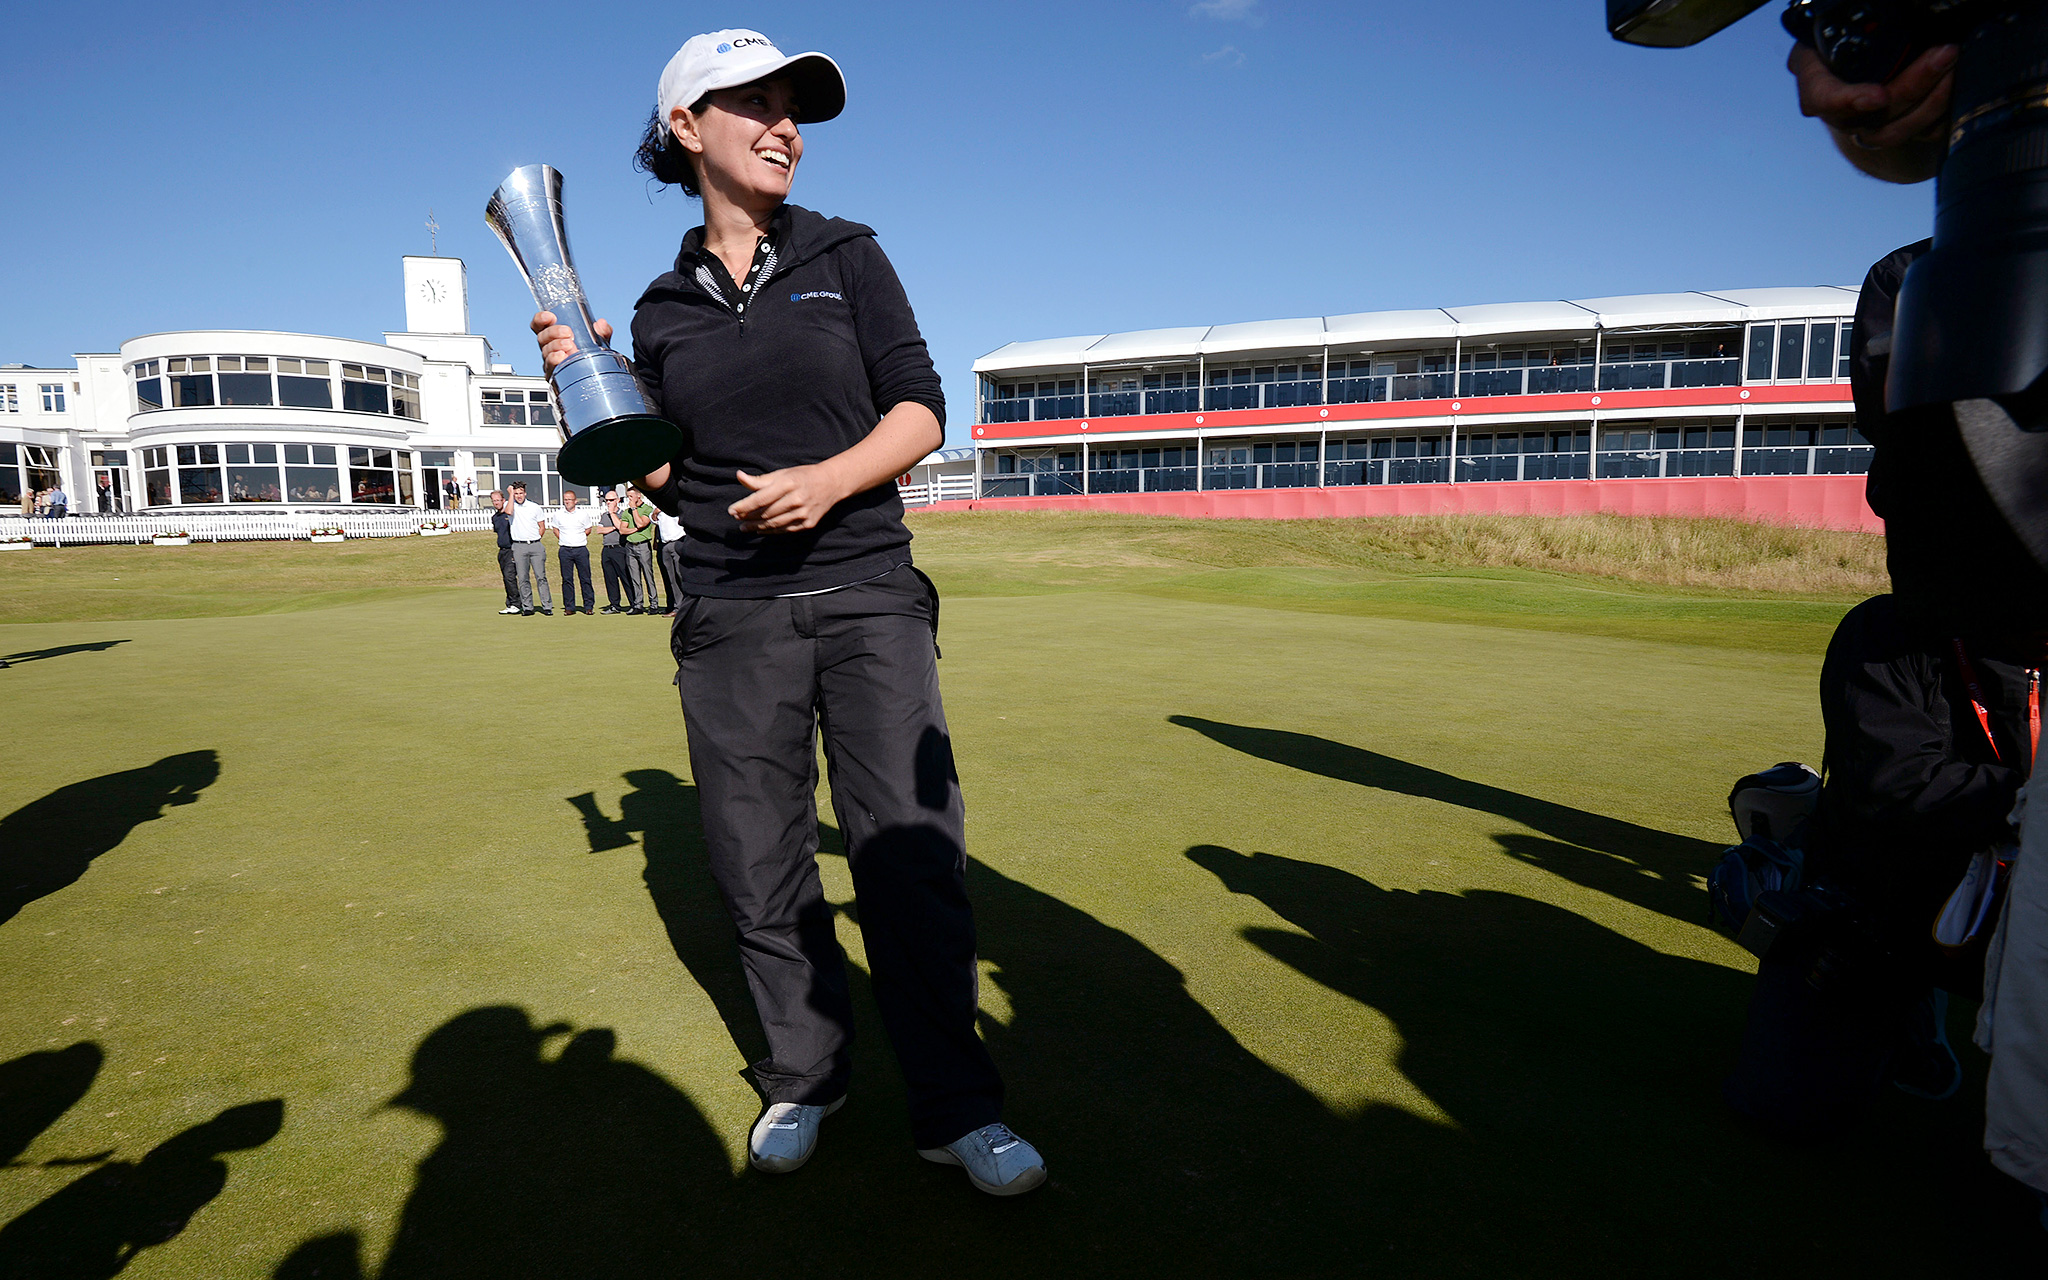 American Mo Martin poses for photographs after winning the Ricoh Women's British Open. Martin earned 474,575 -- she had 599,760 in career money when she arrived in England.